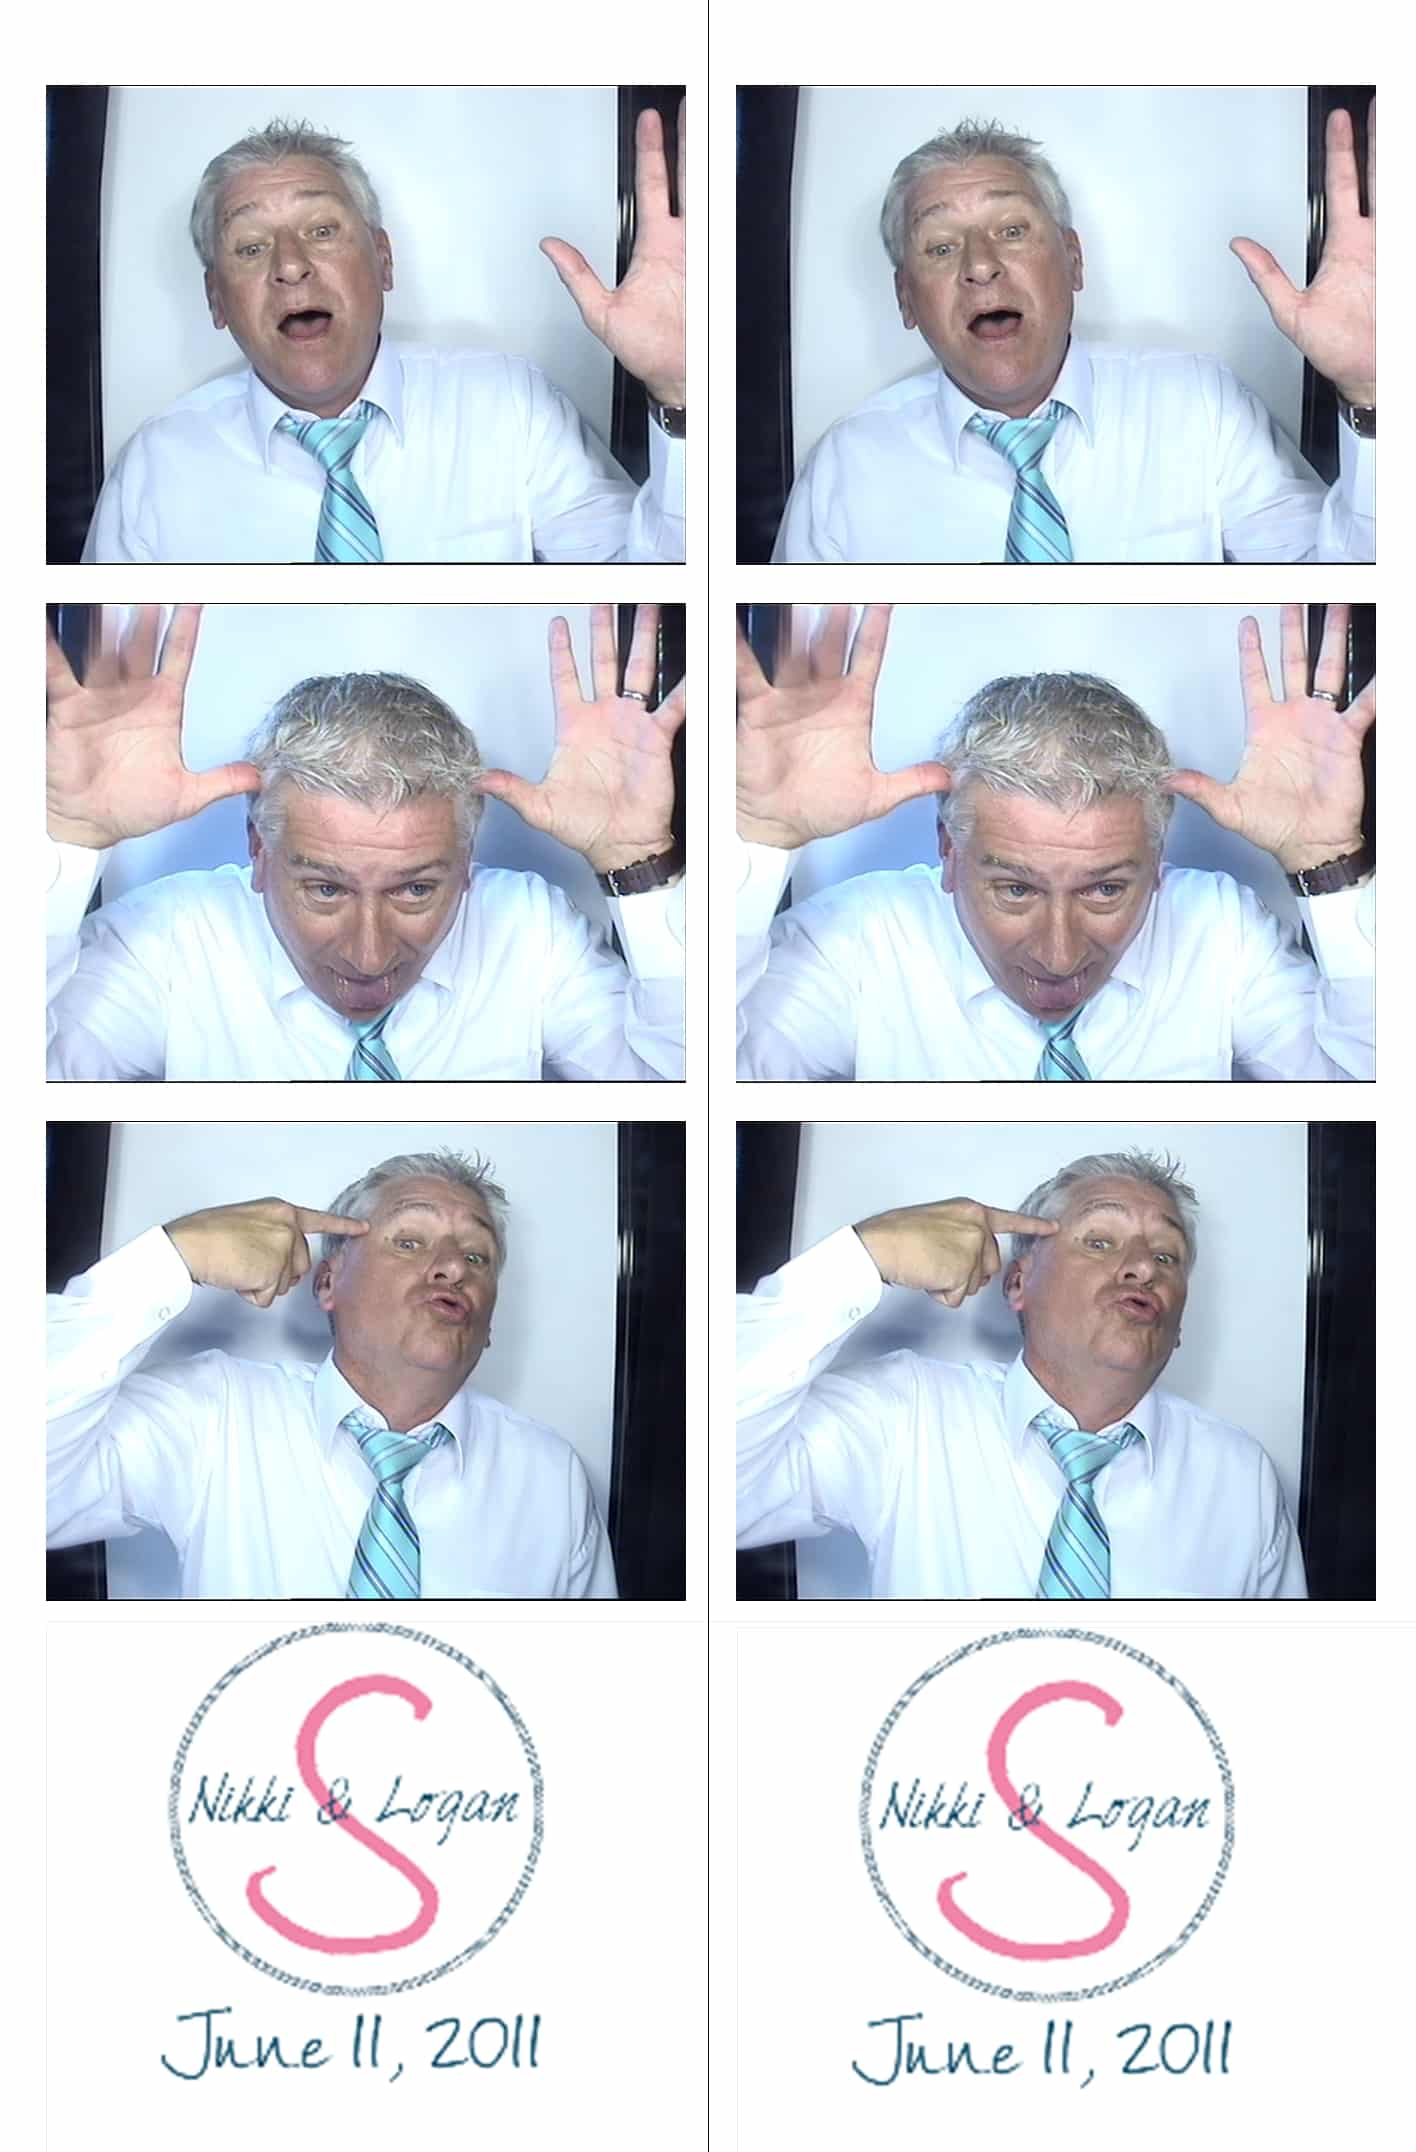 photo strip showing man making silly faces